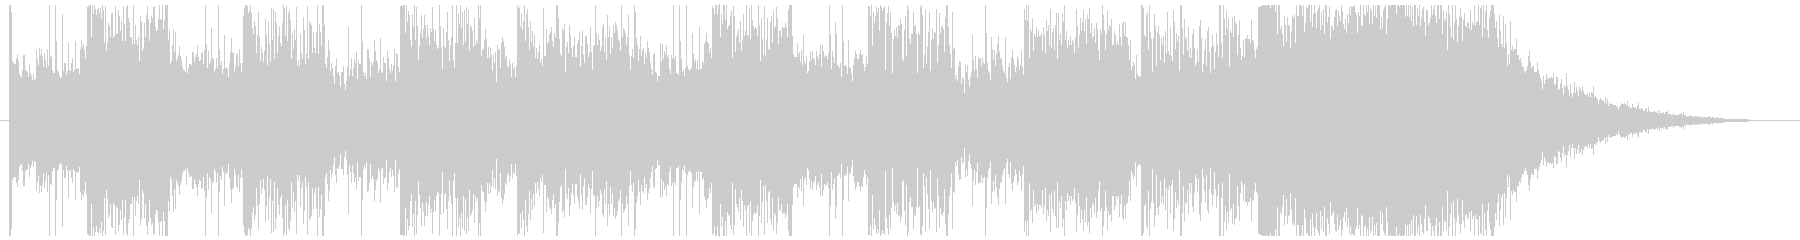 Synth and stylish sound logo's unreproduced waveform